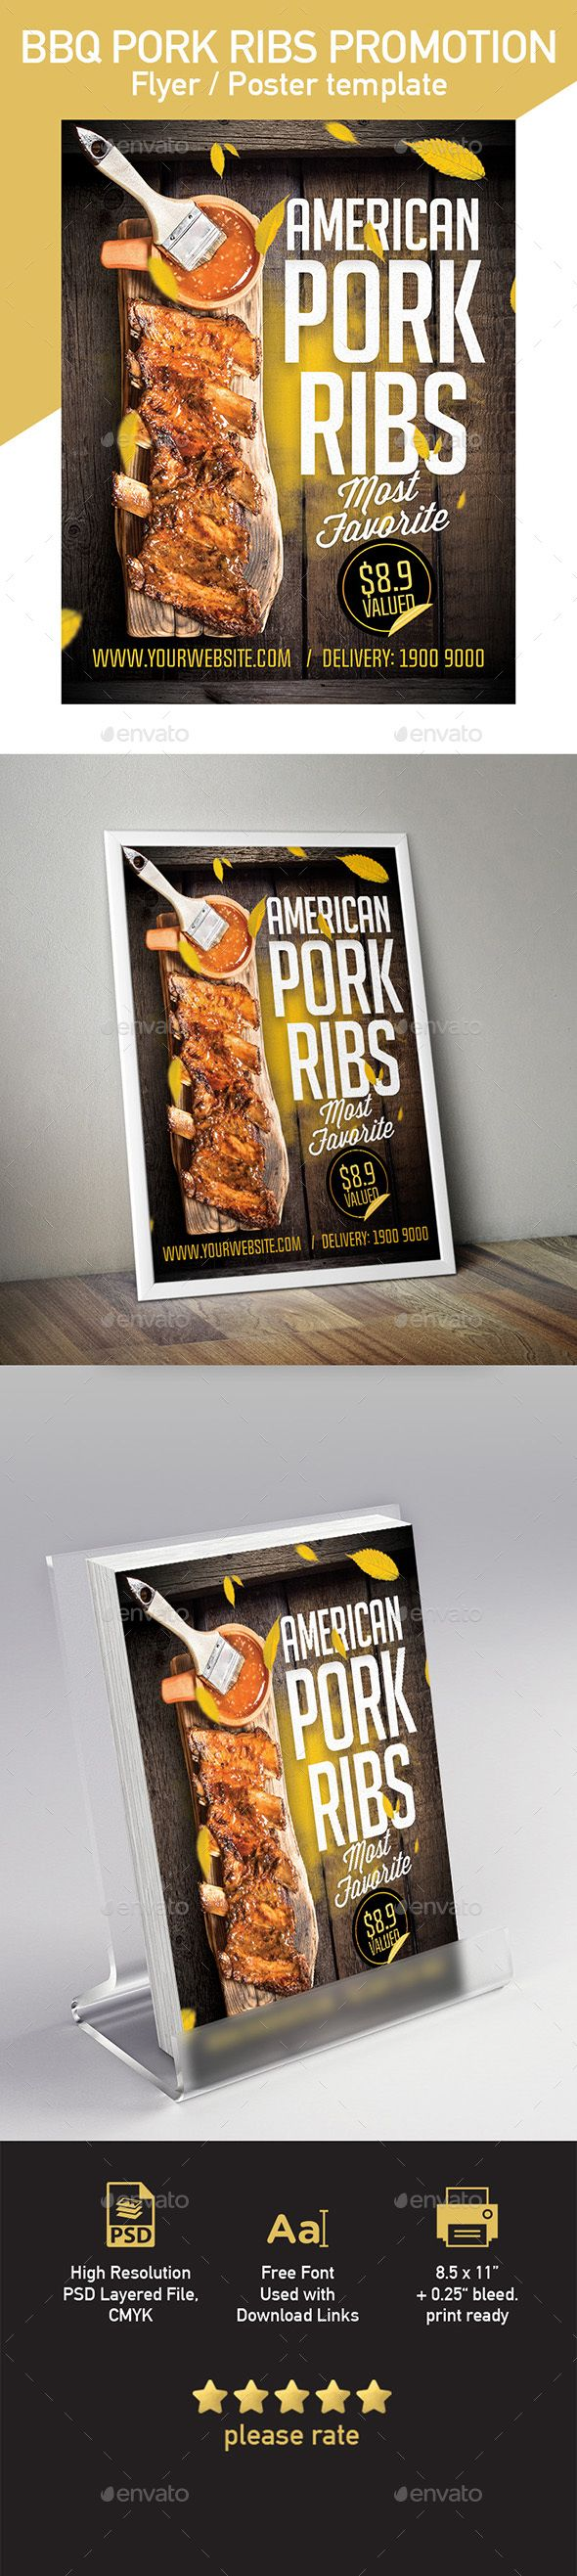 Pork Ribs Template for Flyer or Poster Template PSD